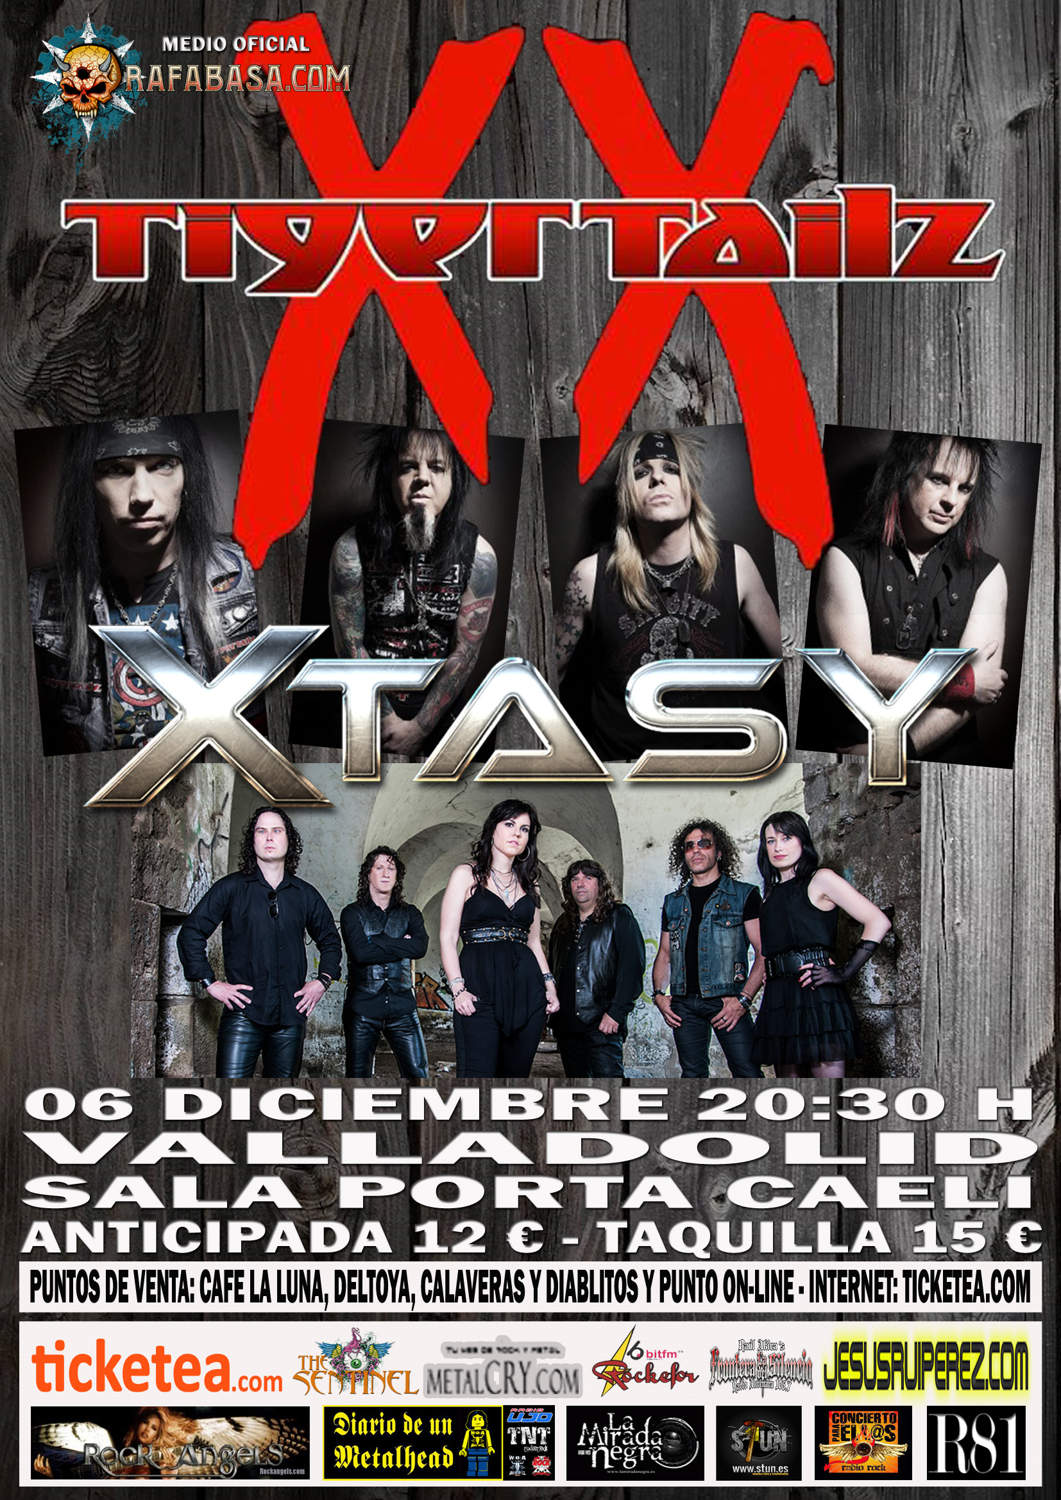 CARTEL TIGERTAILZ VALLADOLID 2014